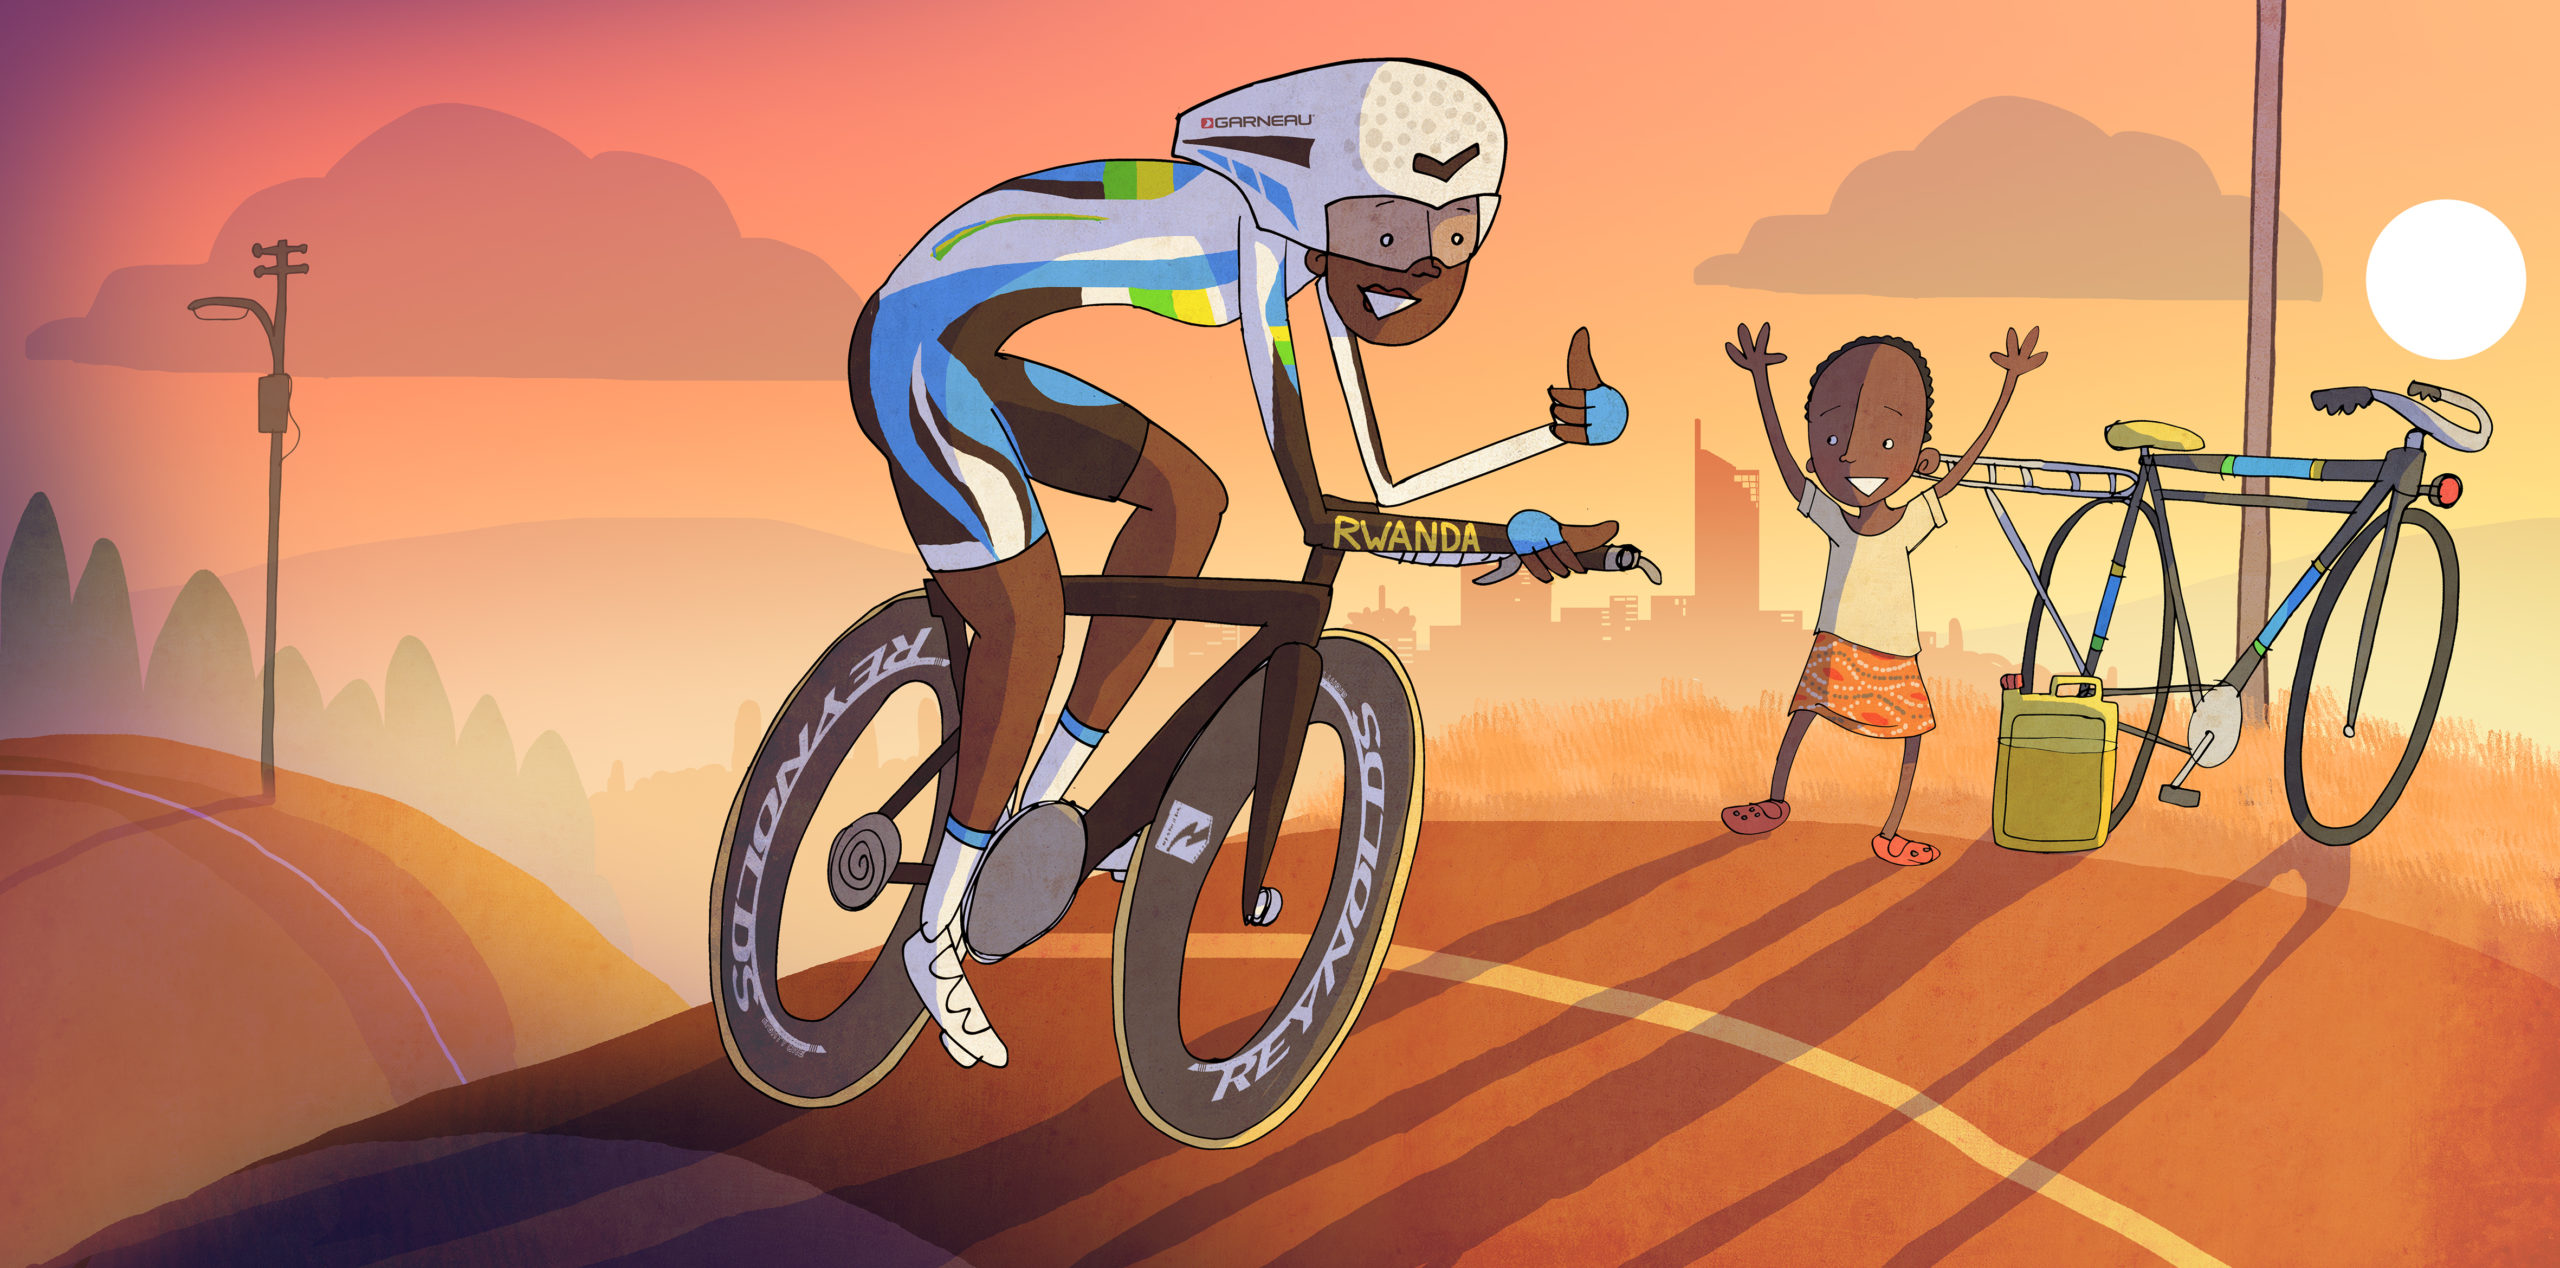 Artwork made in honour of Girubuntu's appearance at the UCI Road World Championships. Courtesy of Ben Scruton.